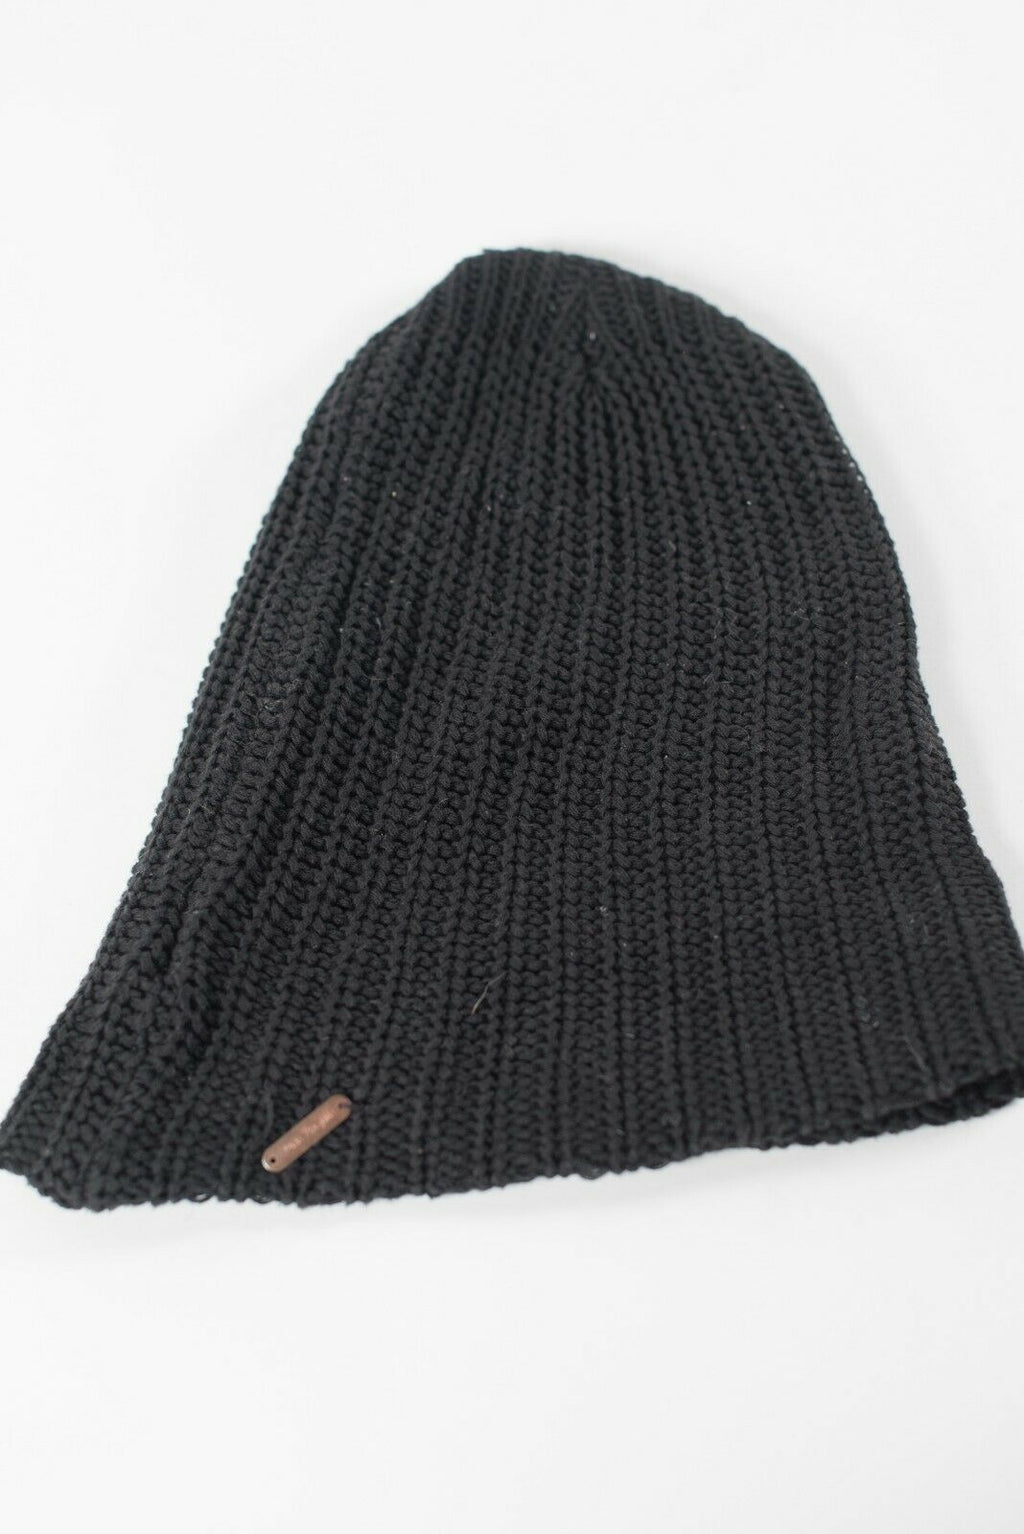 Free People Women's One Size Black Beanie Hat Ribbed Cotton Knit Logo Toque Hat